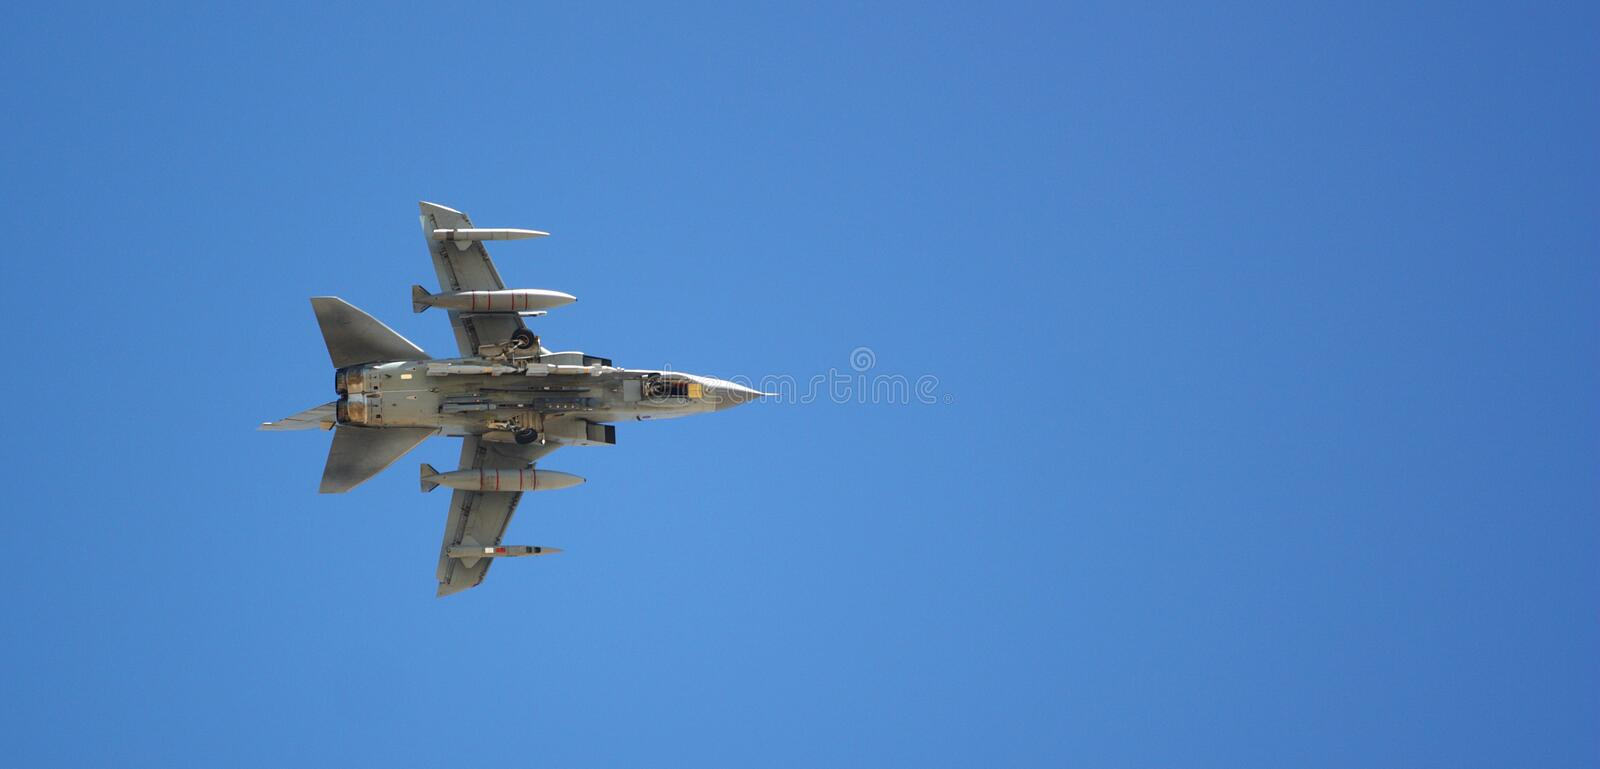 Download Military plane stock photo. Image of clear, military - 19234484